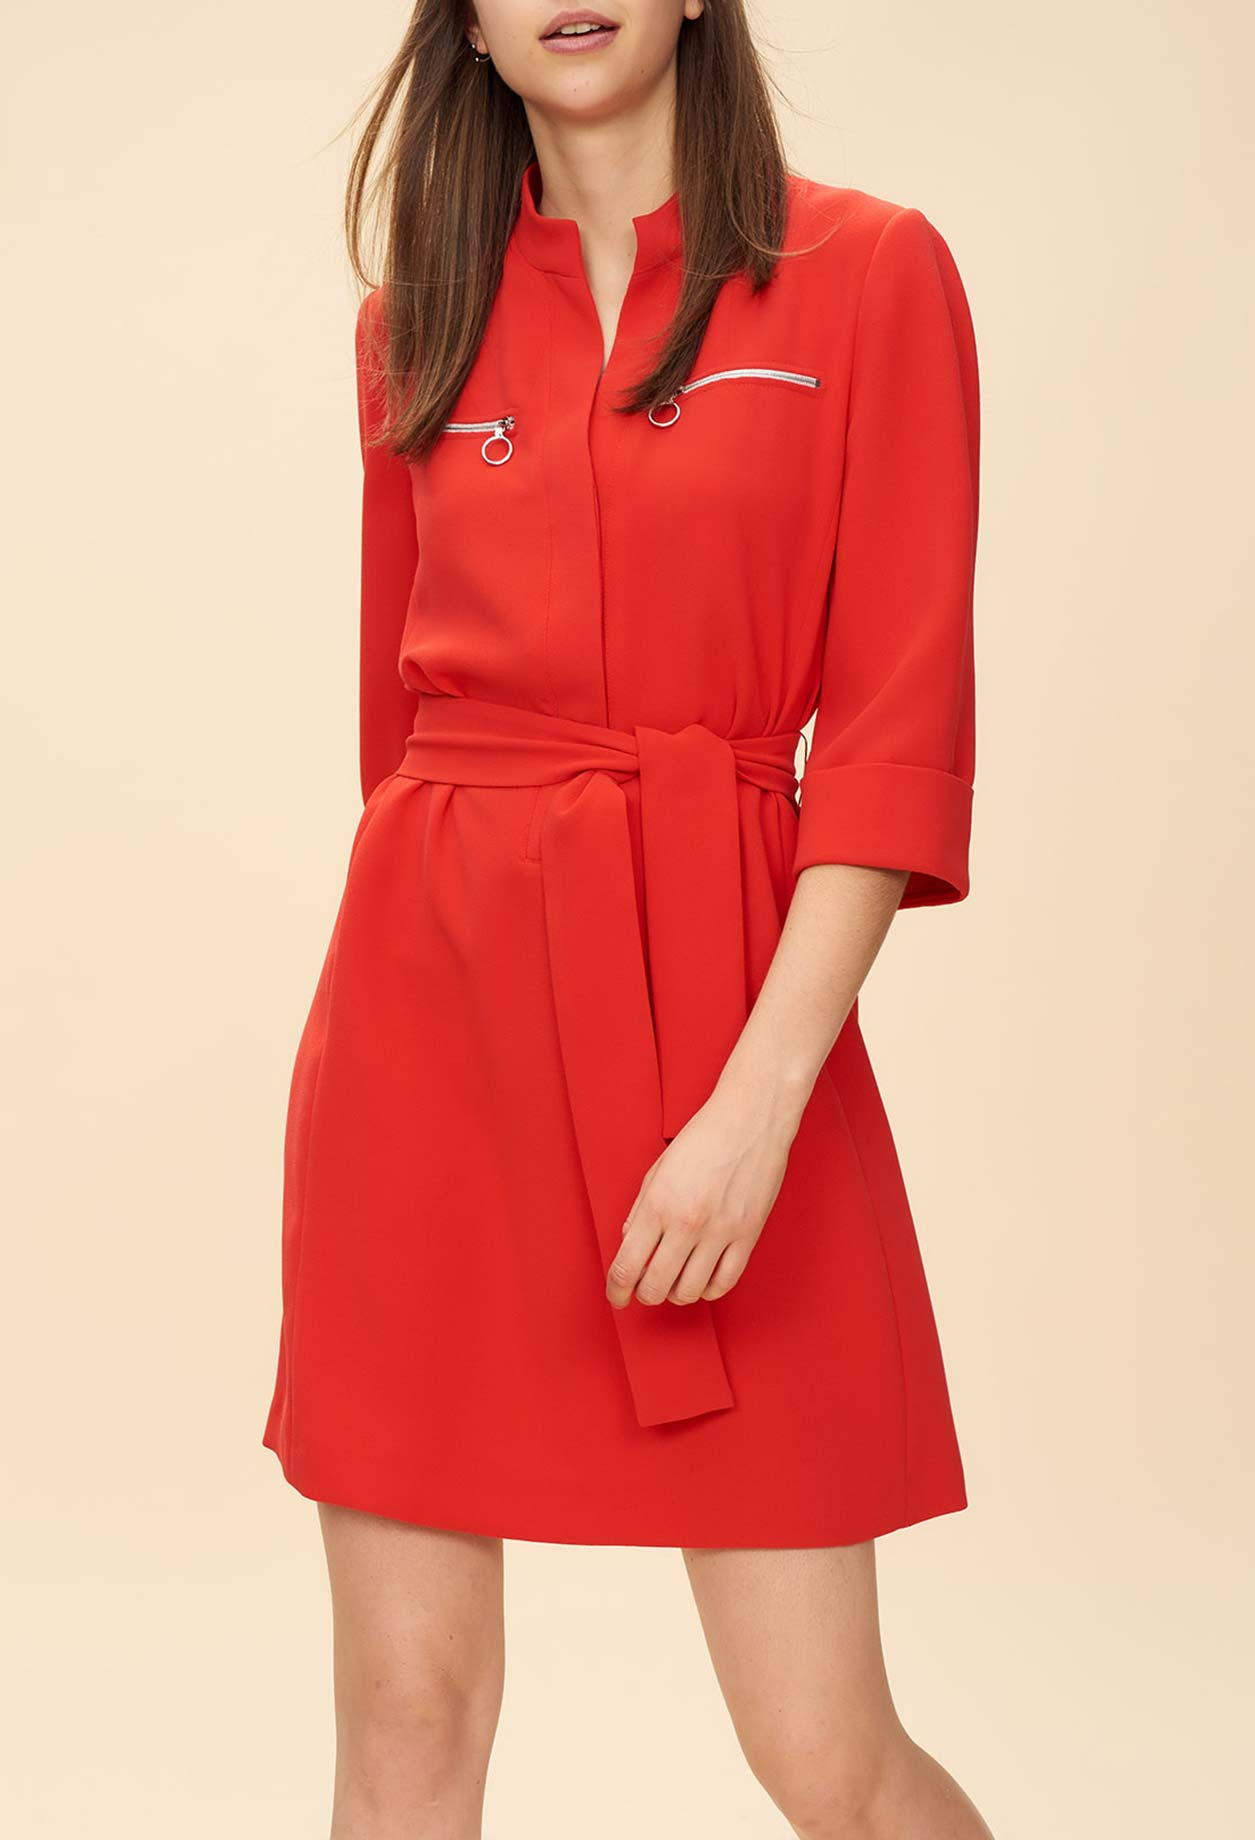 Belted dress with zipped pockets